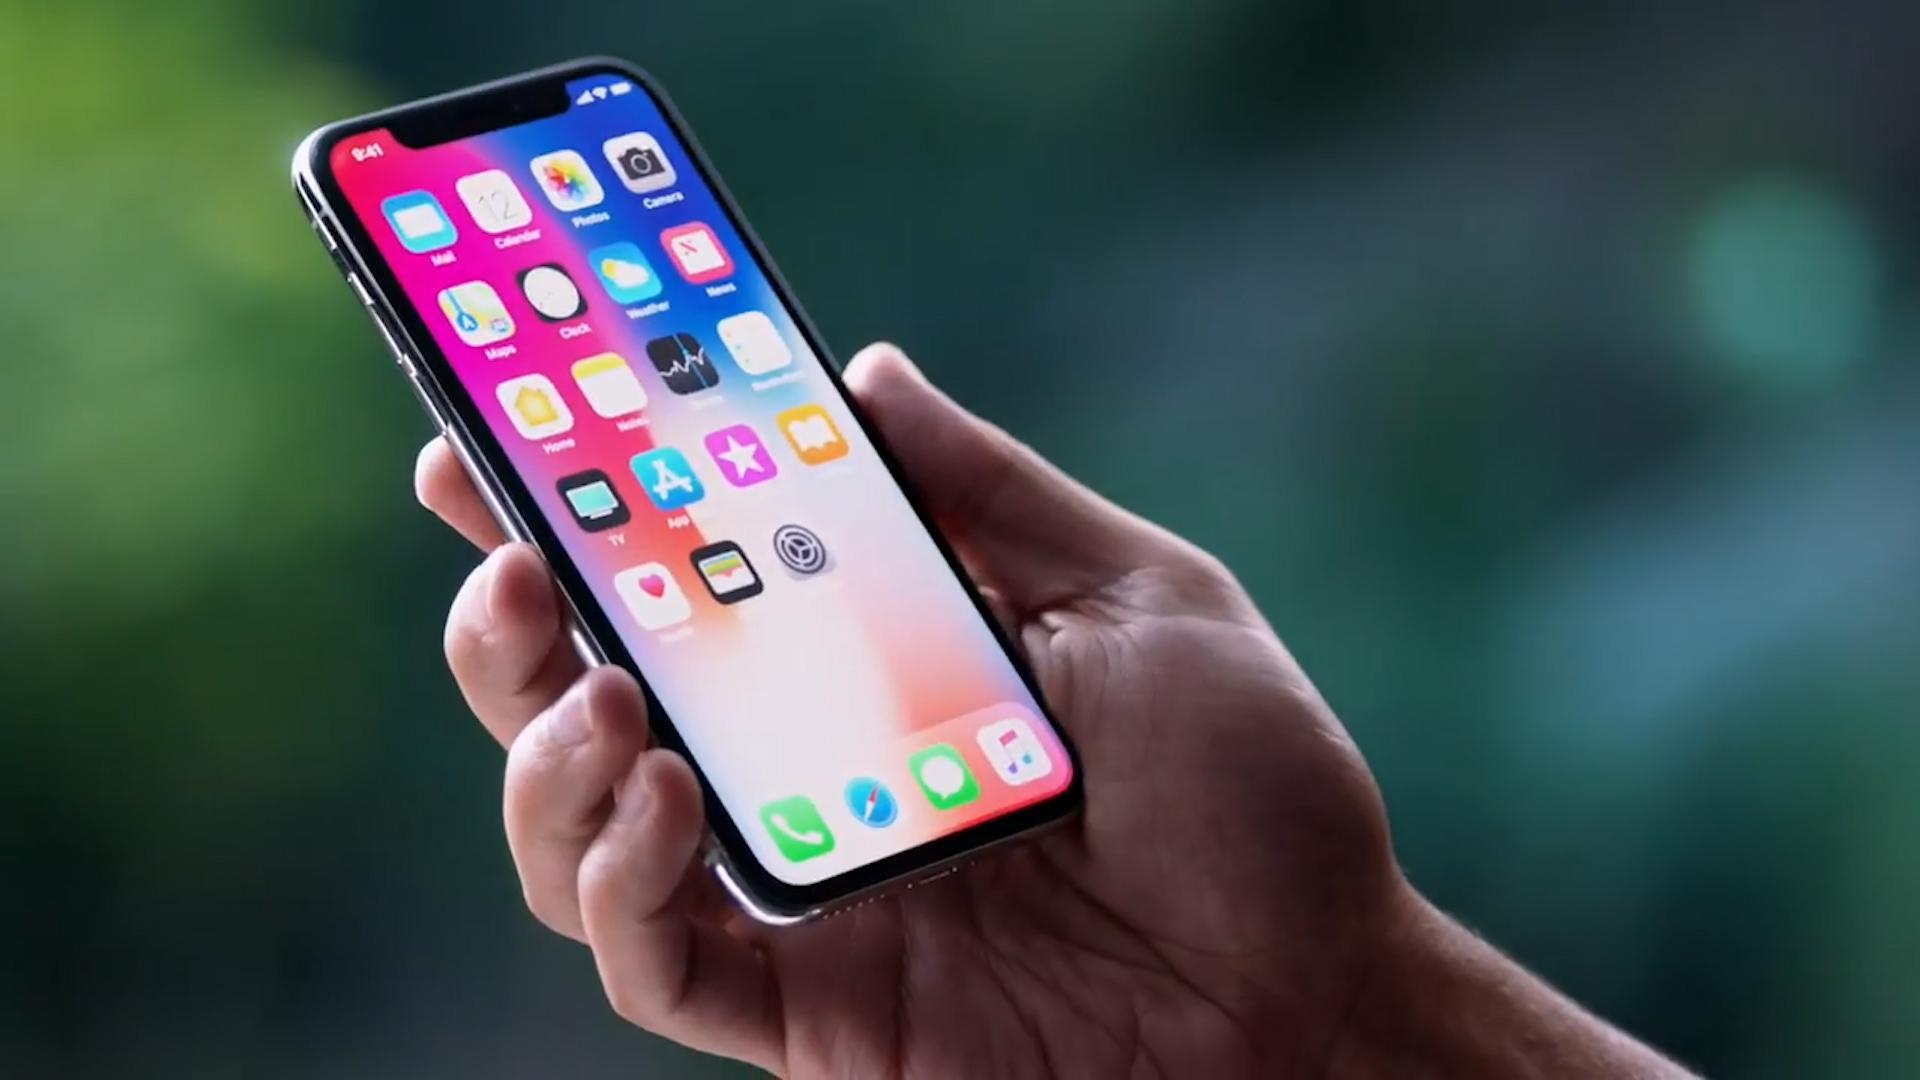 All about the iPhone X